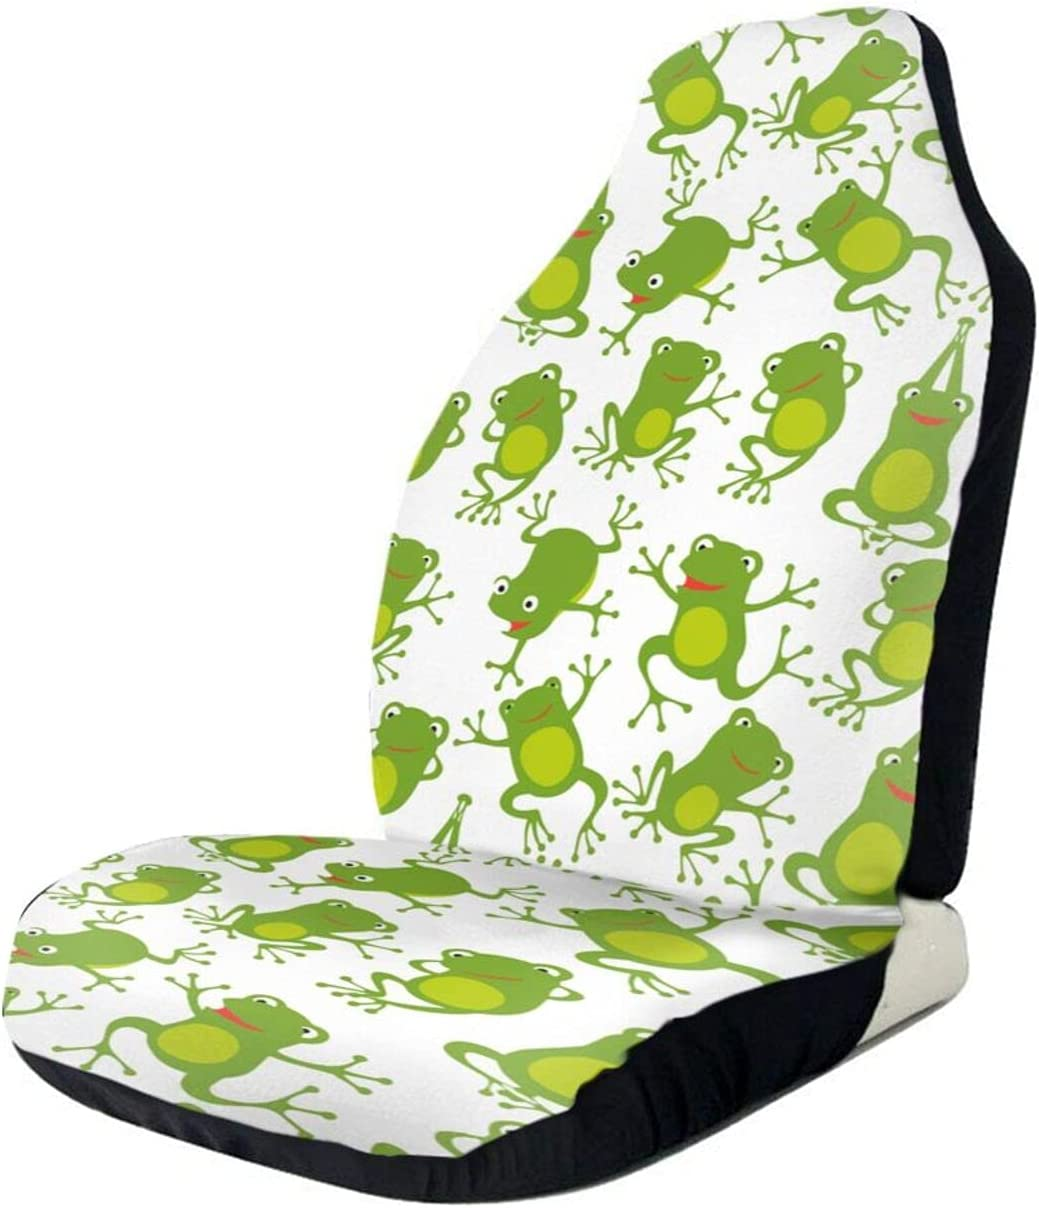 STWINW Car At the price Seat Covers Cute Cushion 3D Protec half Frog Yoga